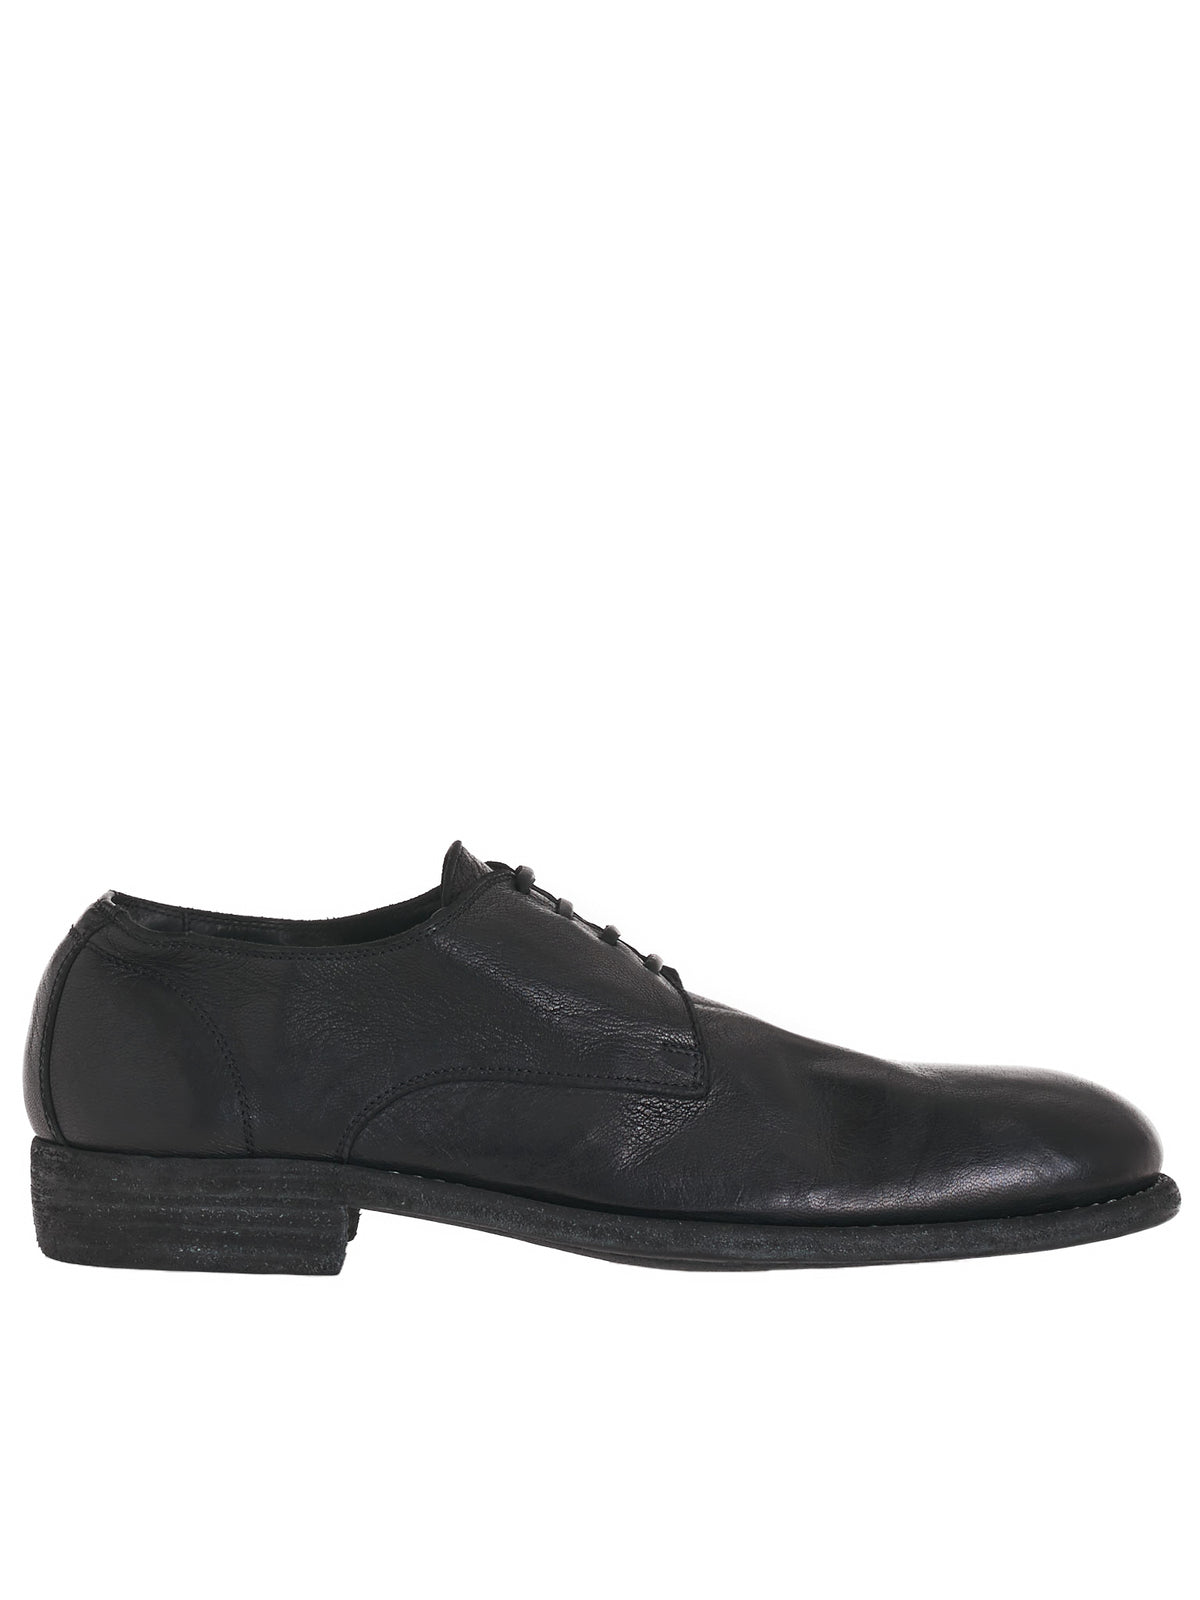 992 Goat Leather Derby (992-GOAT-FG-BLACK)